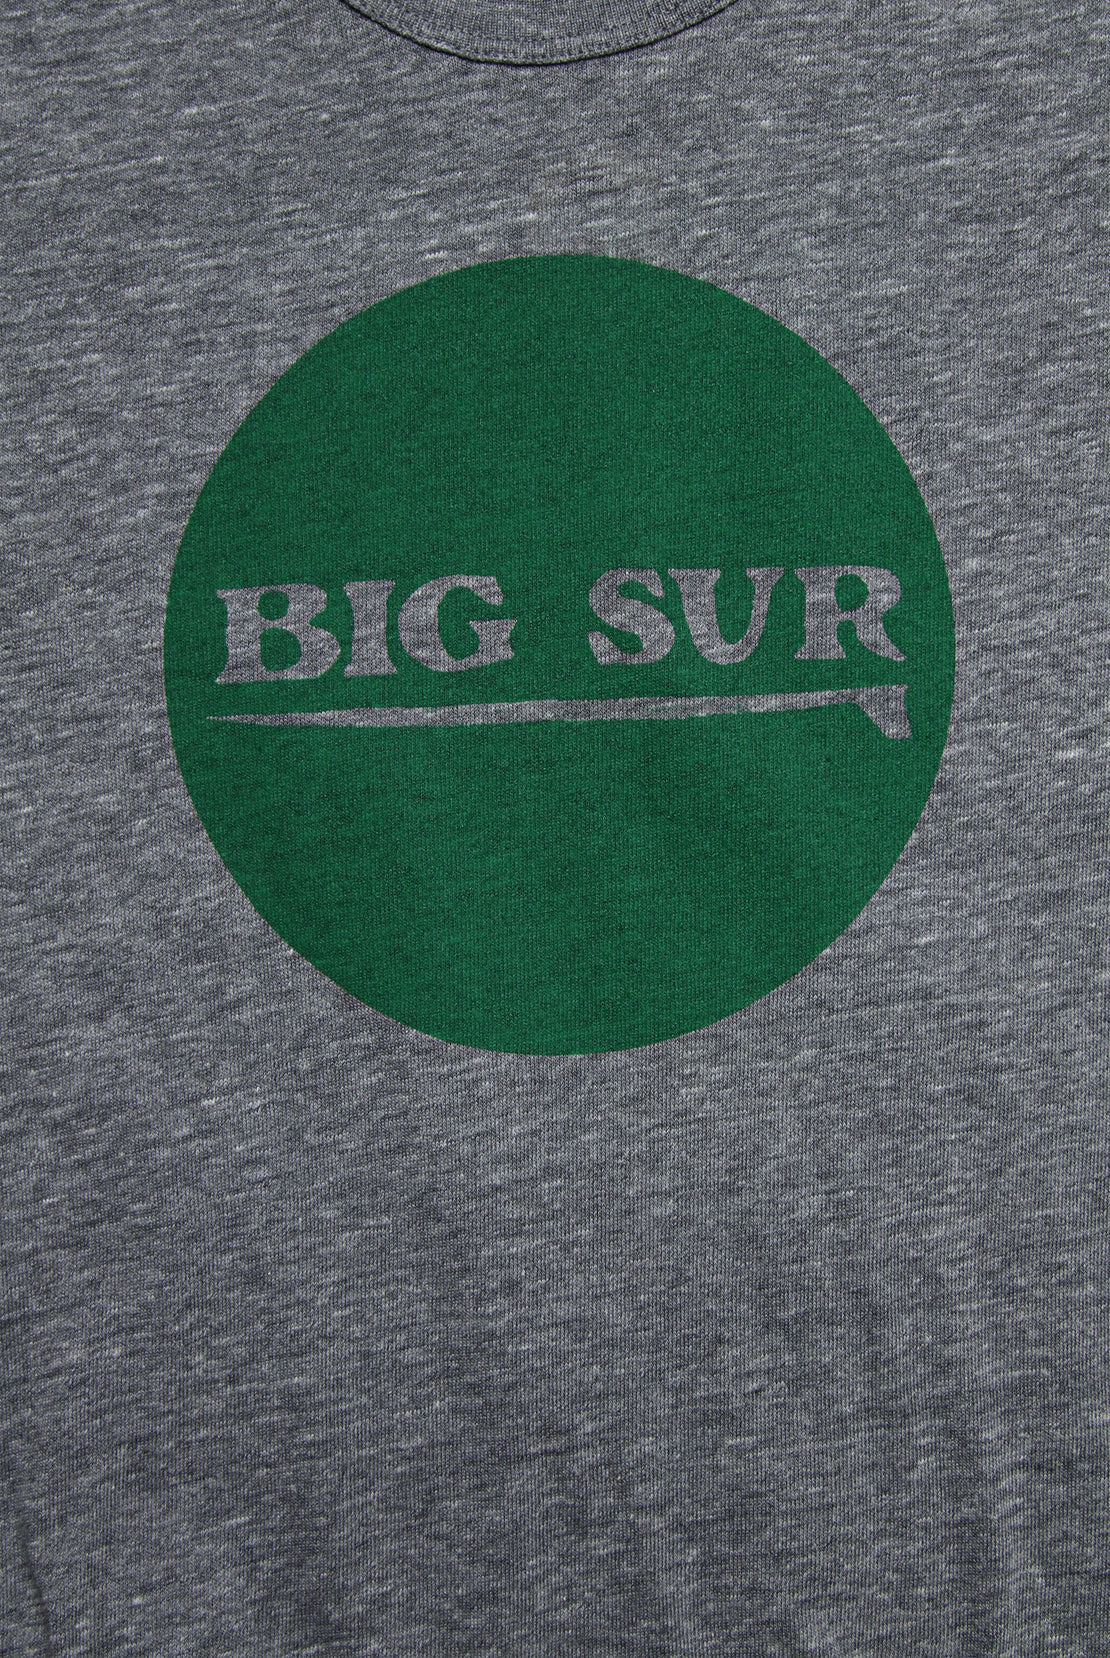 Graphic Tee - Big Sur - Alchemy Design - STAG Provisions - Tops - Graphic Tee